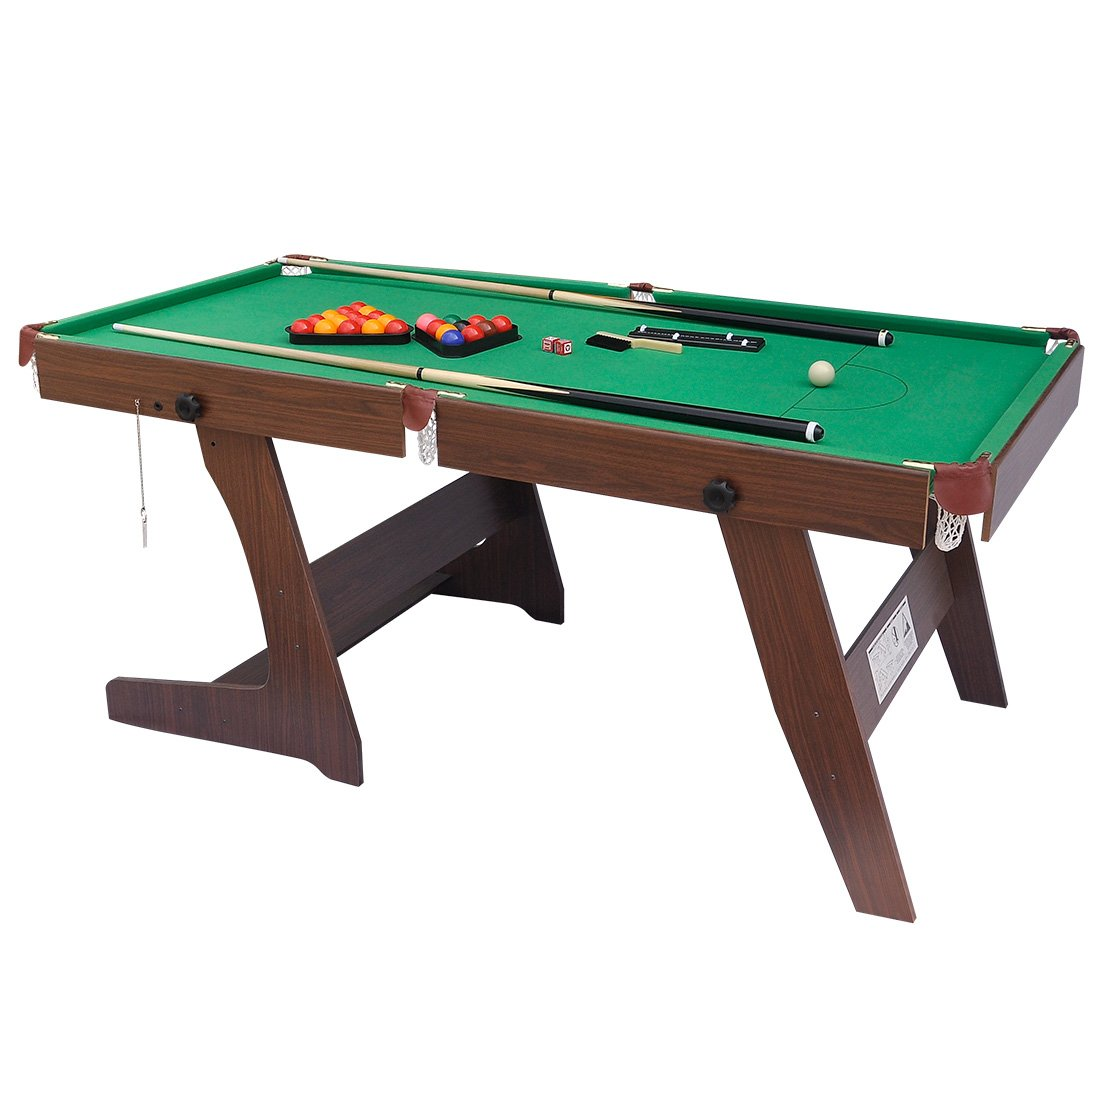 Folding legs pool table for sale - Hlc S Green Billiards Foldaway Table Is Suitable To Both Pool And Snooker Games And Comes With All The Needed Accessories The Current Version Is A Major